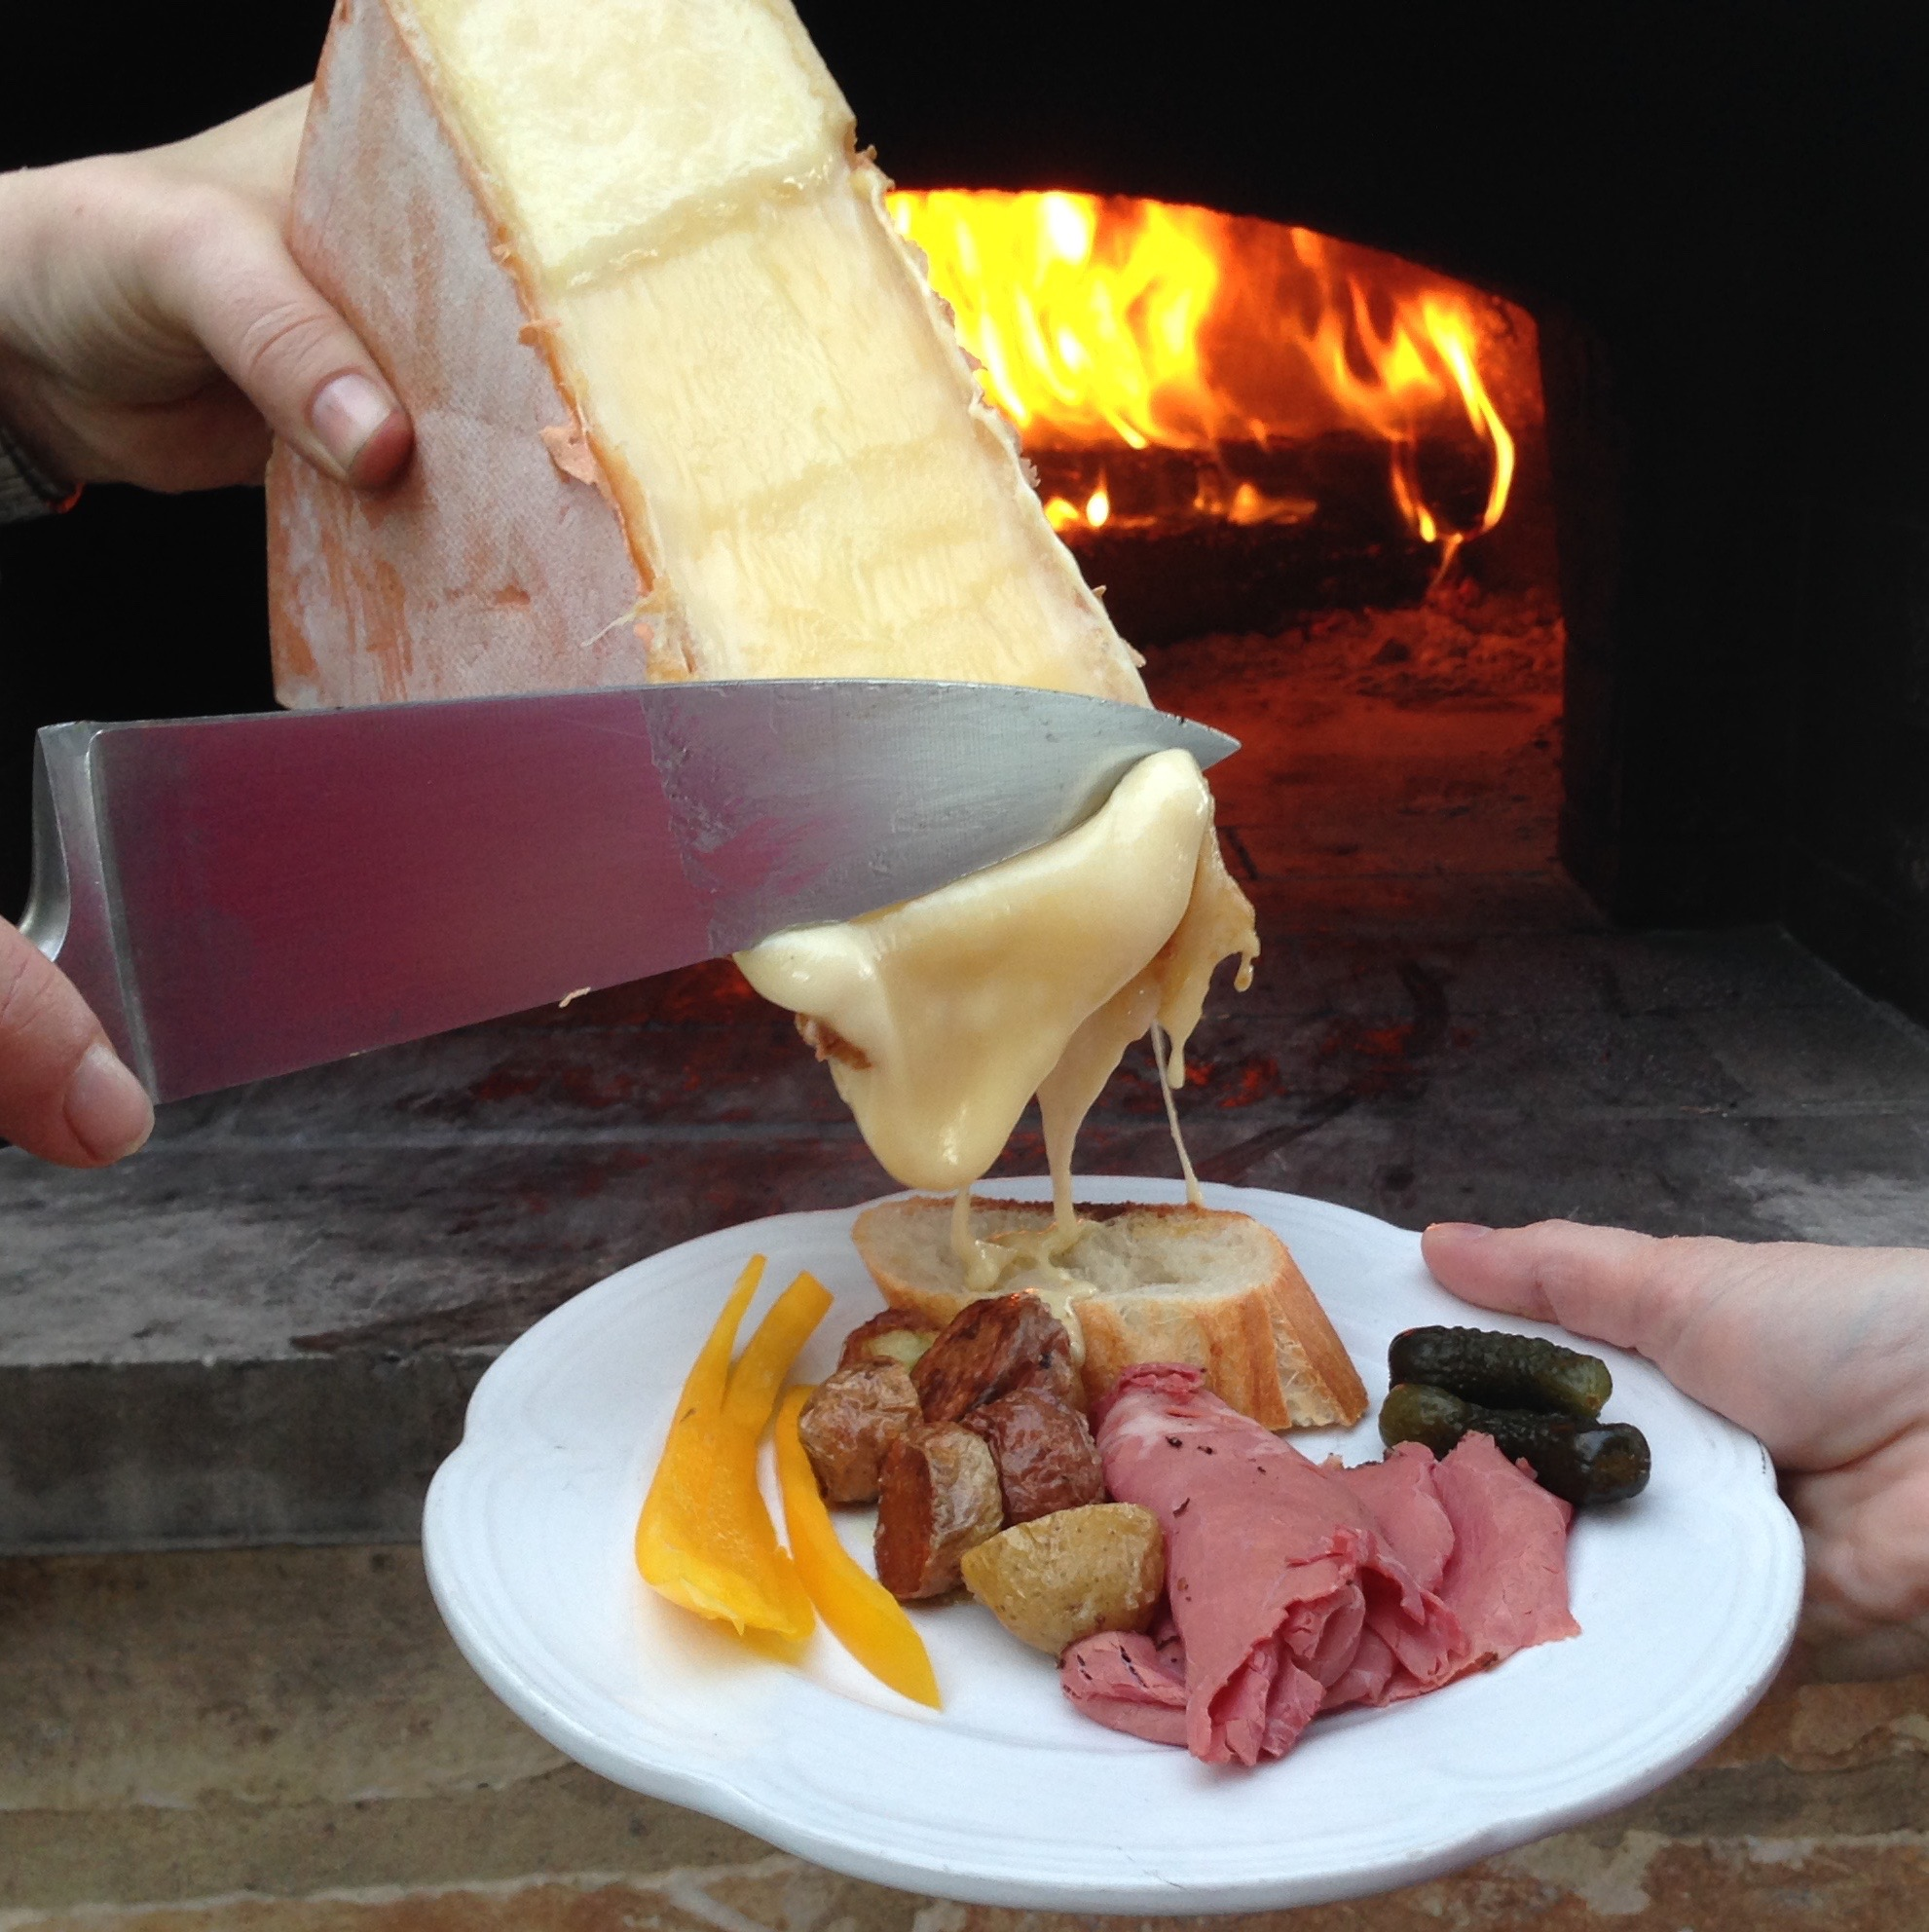 Texas Oven Co Raclette Another Classic For Cooking With